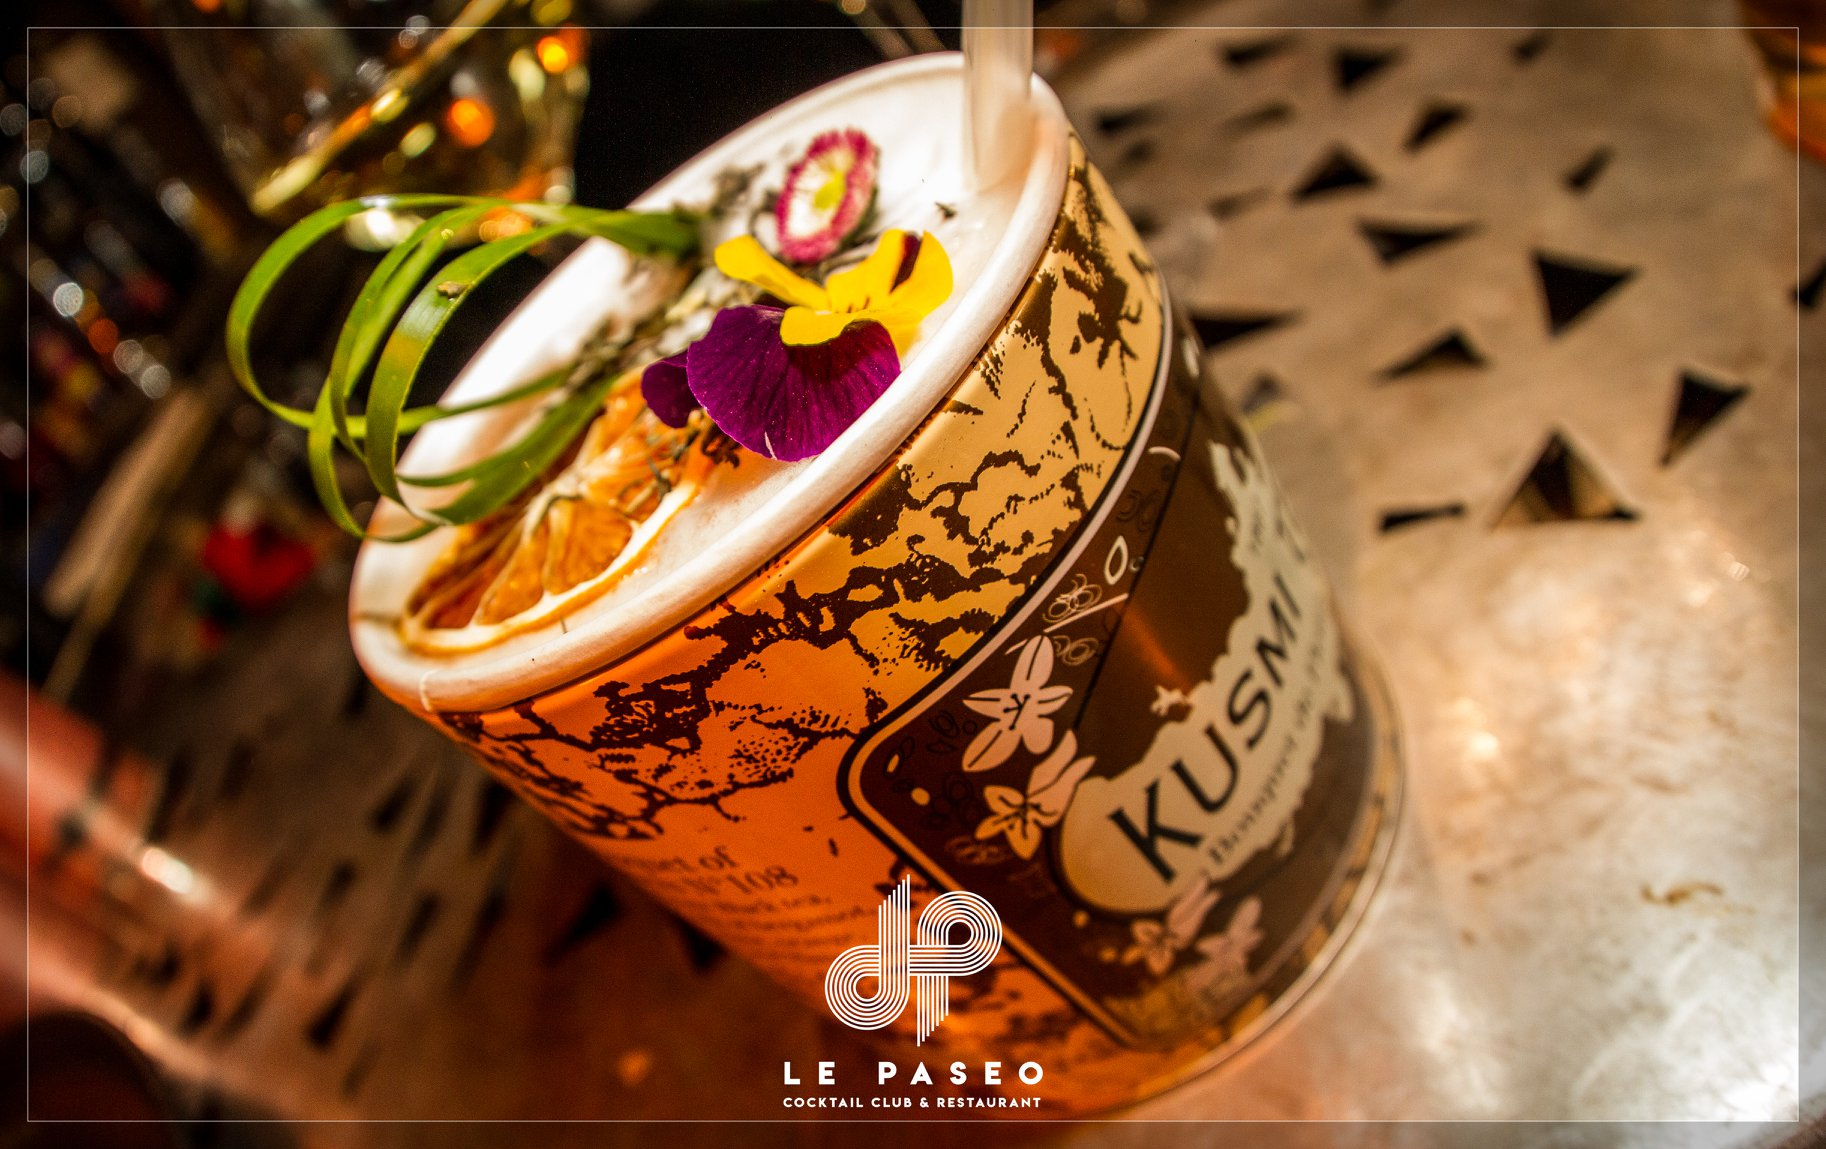 Le Paseo - Cocktail club- KusmiTeaCocktail